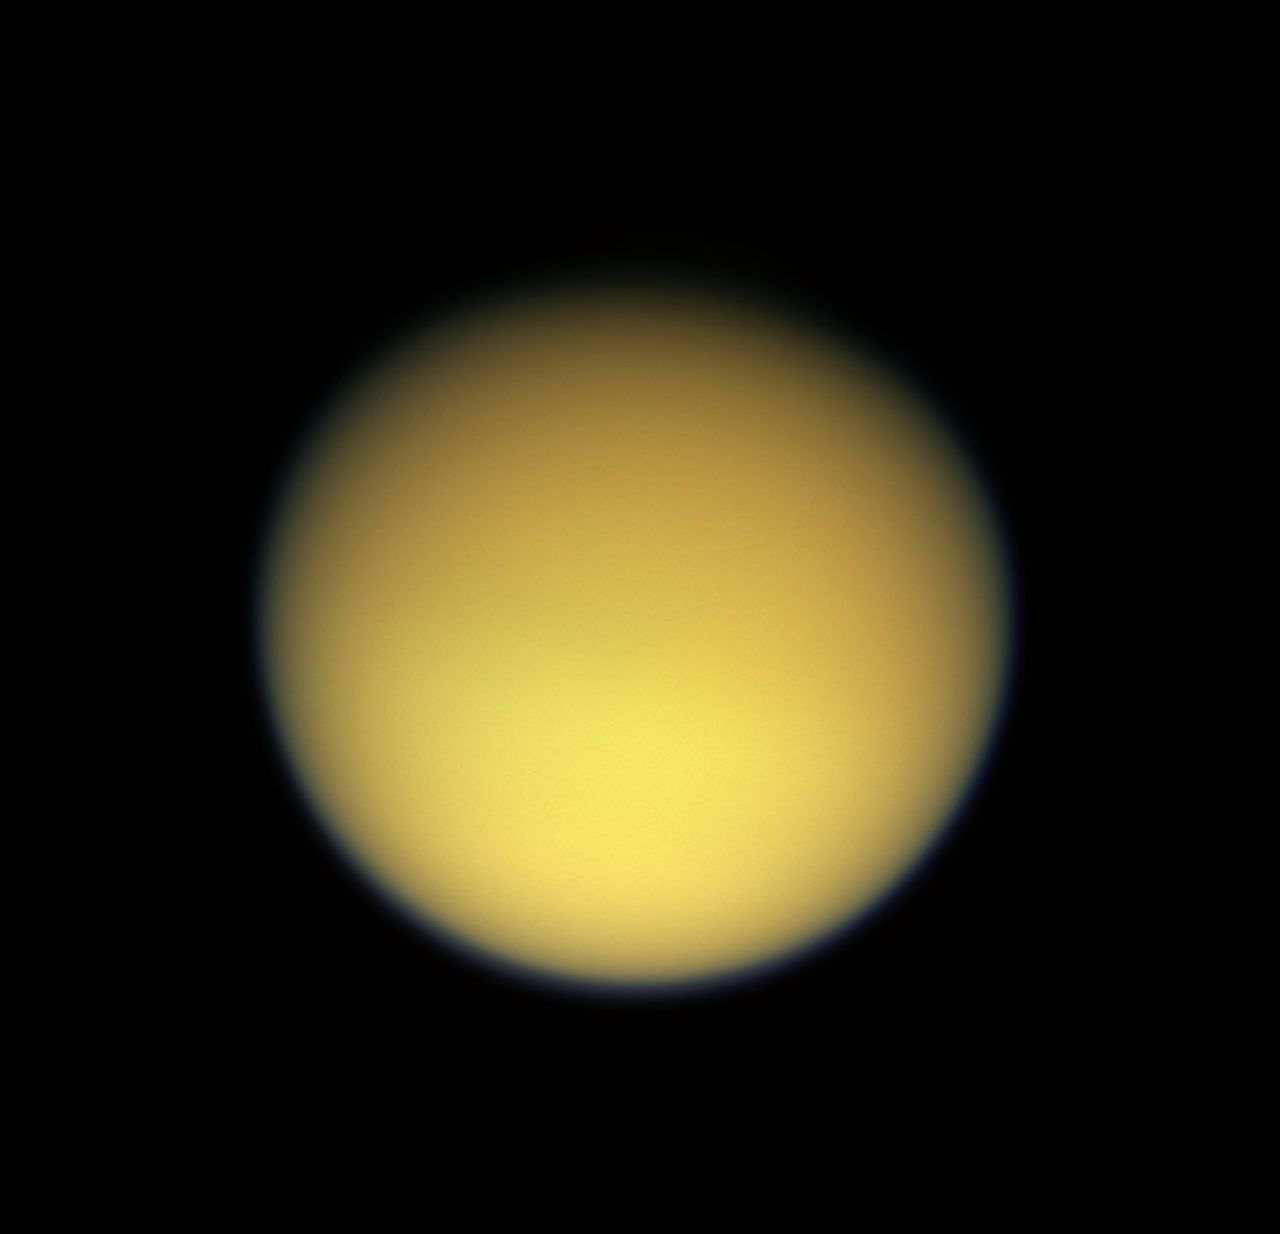 De noordpool van Saturnusmaan Titan is hier in het donker. foto afp Saturn's large, smog-enshrouded moon Titan greets Cassini in full color as the spacecraft makes its third close pass in this view released 17 February by NASA. The northern polar region is largely in darkness at this time. This image was taken with the Cassini spacecraft wide angle camera through using red, green and blue spectral filters were combined to create this natural color view. The image was acquired at a distance of approximately 229,000 kilometers (142,000 miles) from Titan. AFP PHOTO/HO/NASA